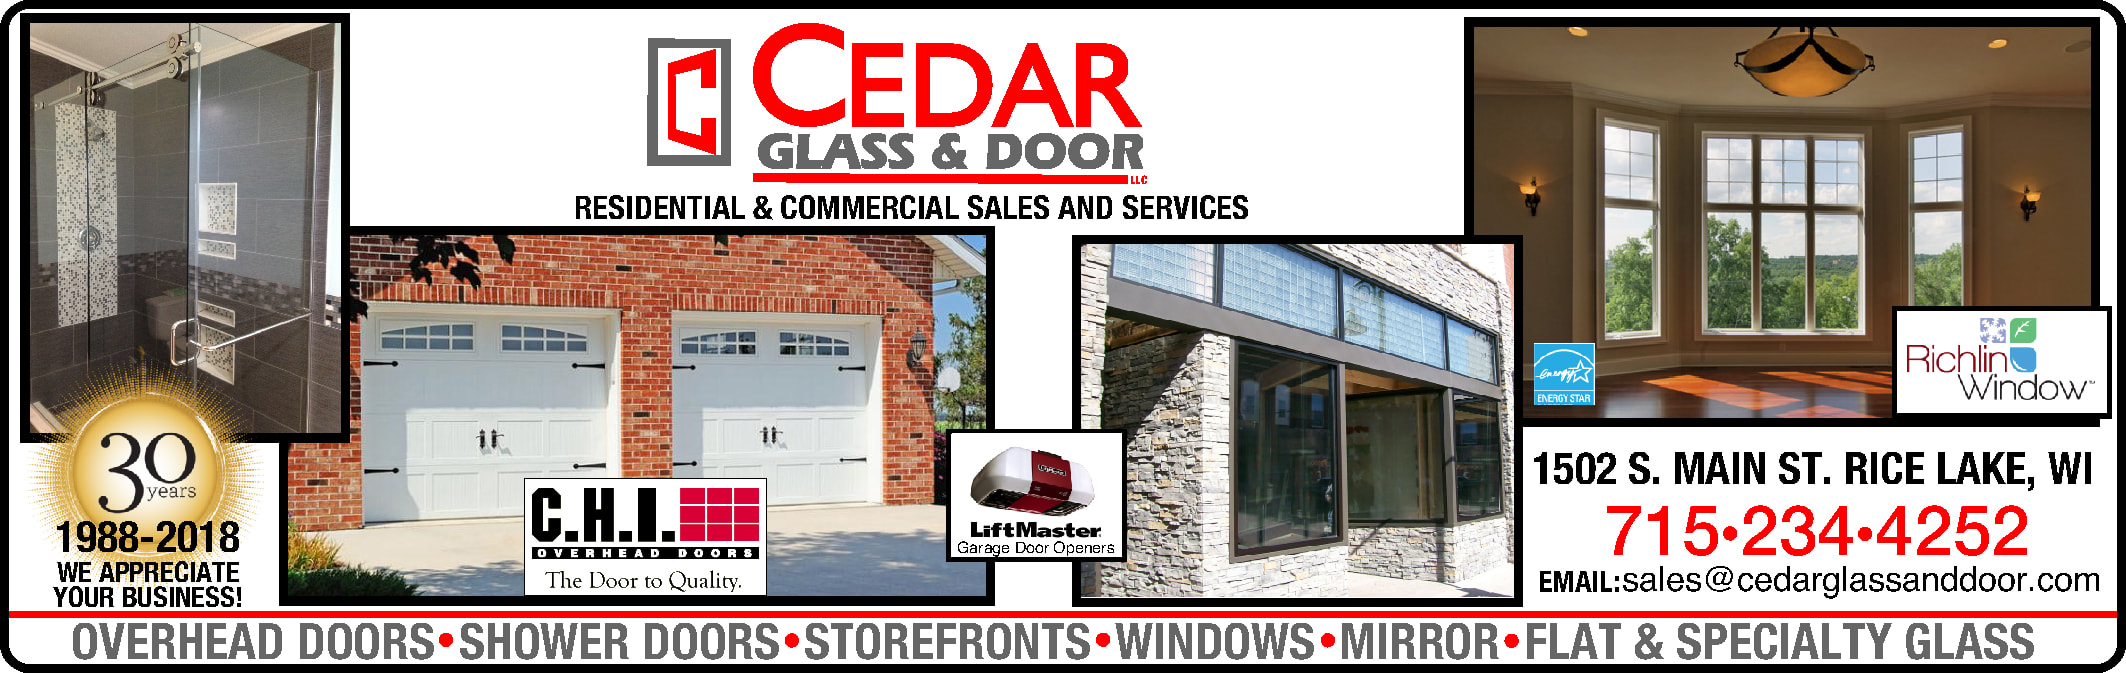 Cedar Gl & DooR, LLC (715) 234-4252 1502 S. MAIN ST. Rice ... on screen doors for patio doors, dishwasher for mobile home, deck for mobile home, lock door for mobile home, ladder for mobile home, doorbell for mobile home, hitch for mobile home, door frame for mobile home, shower for mobile home, interior door for mobile home, roof vent for mobile home, spring door for mobile home, back porch for mobile home, back door for mobile home, ramp for mobile home, fireplace for mobile home, patio for mobile home, screen doors for screen porches,